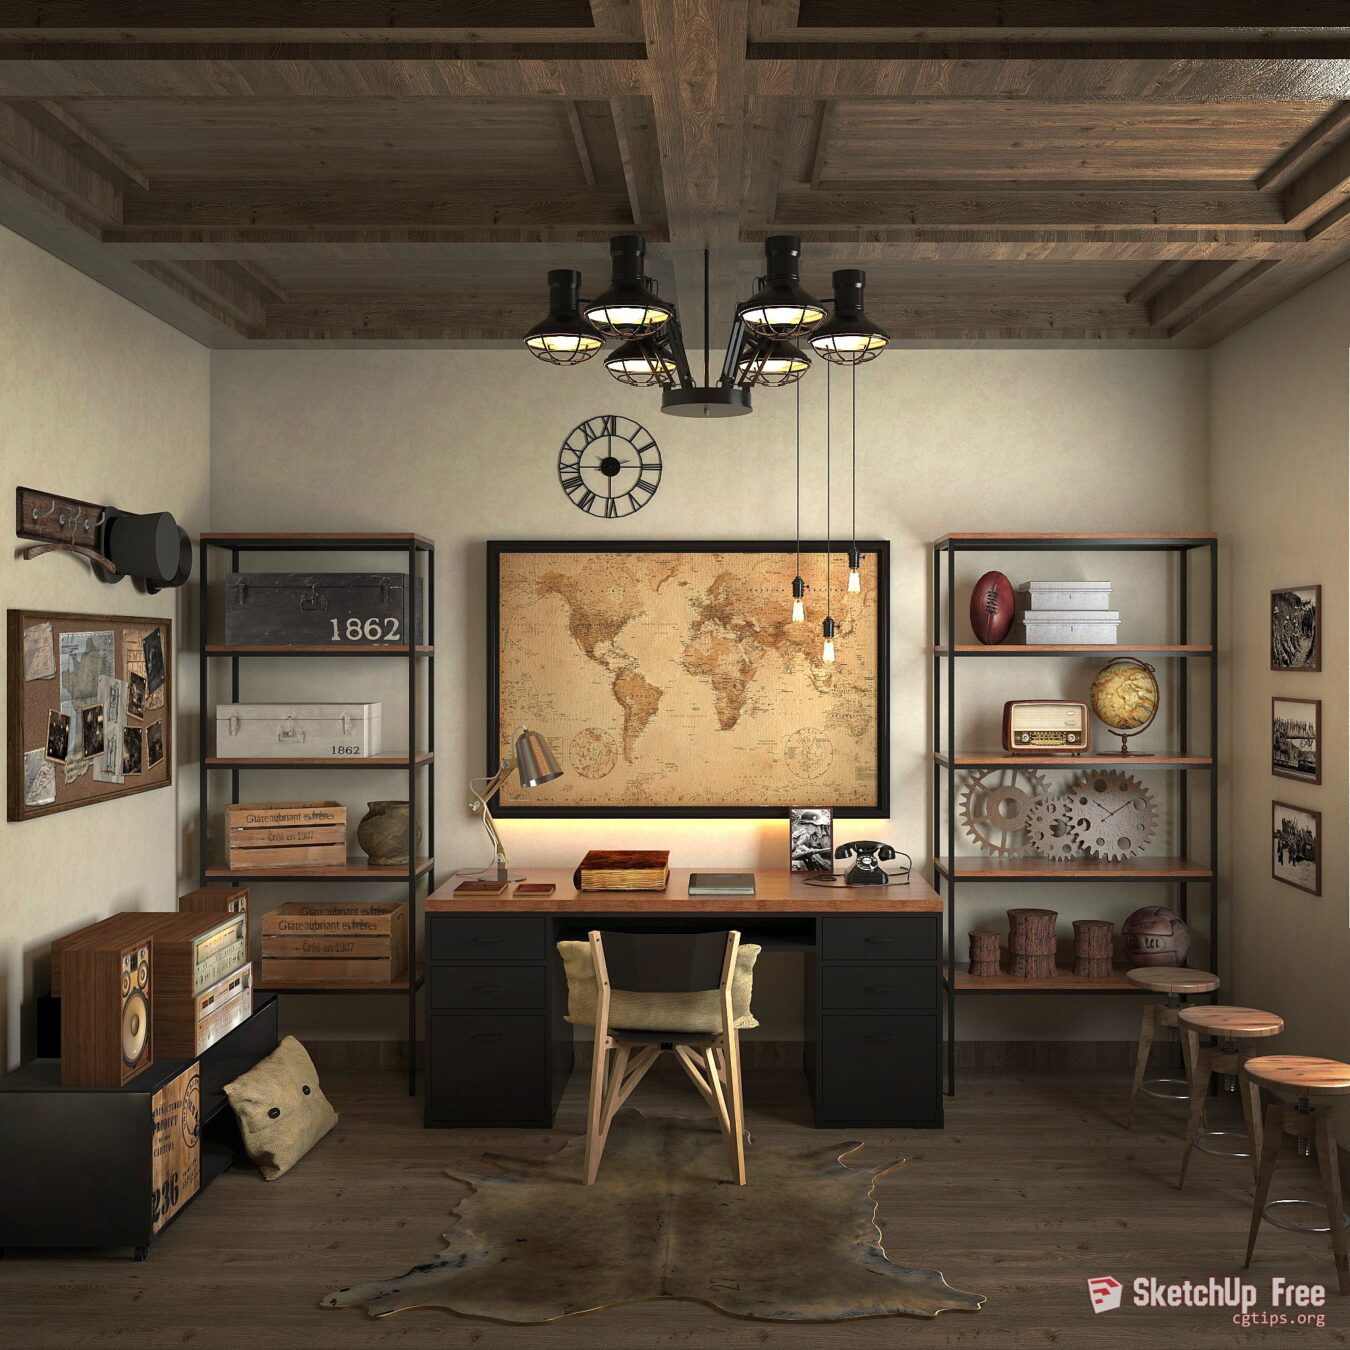 1206 Interior Office Sketchup Model By Alfonsus Sri Agseyoga